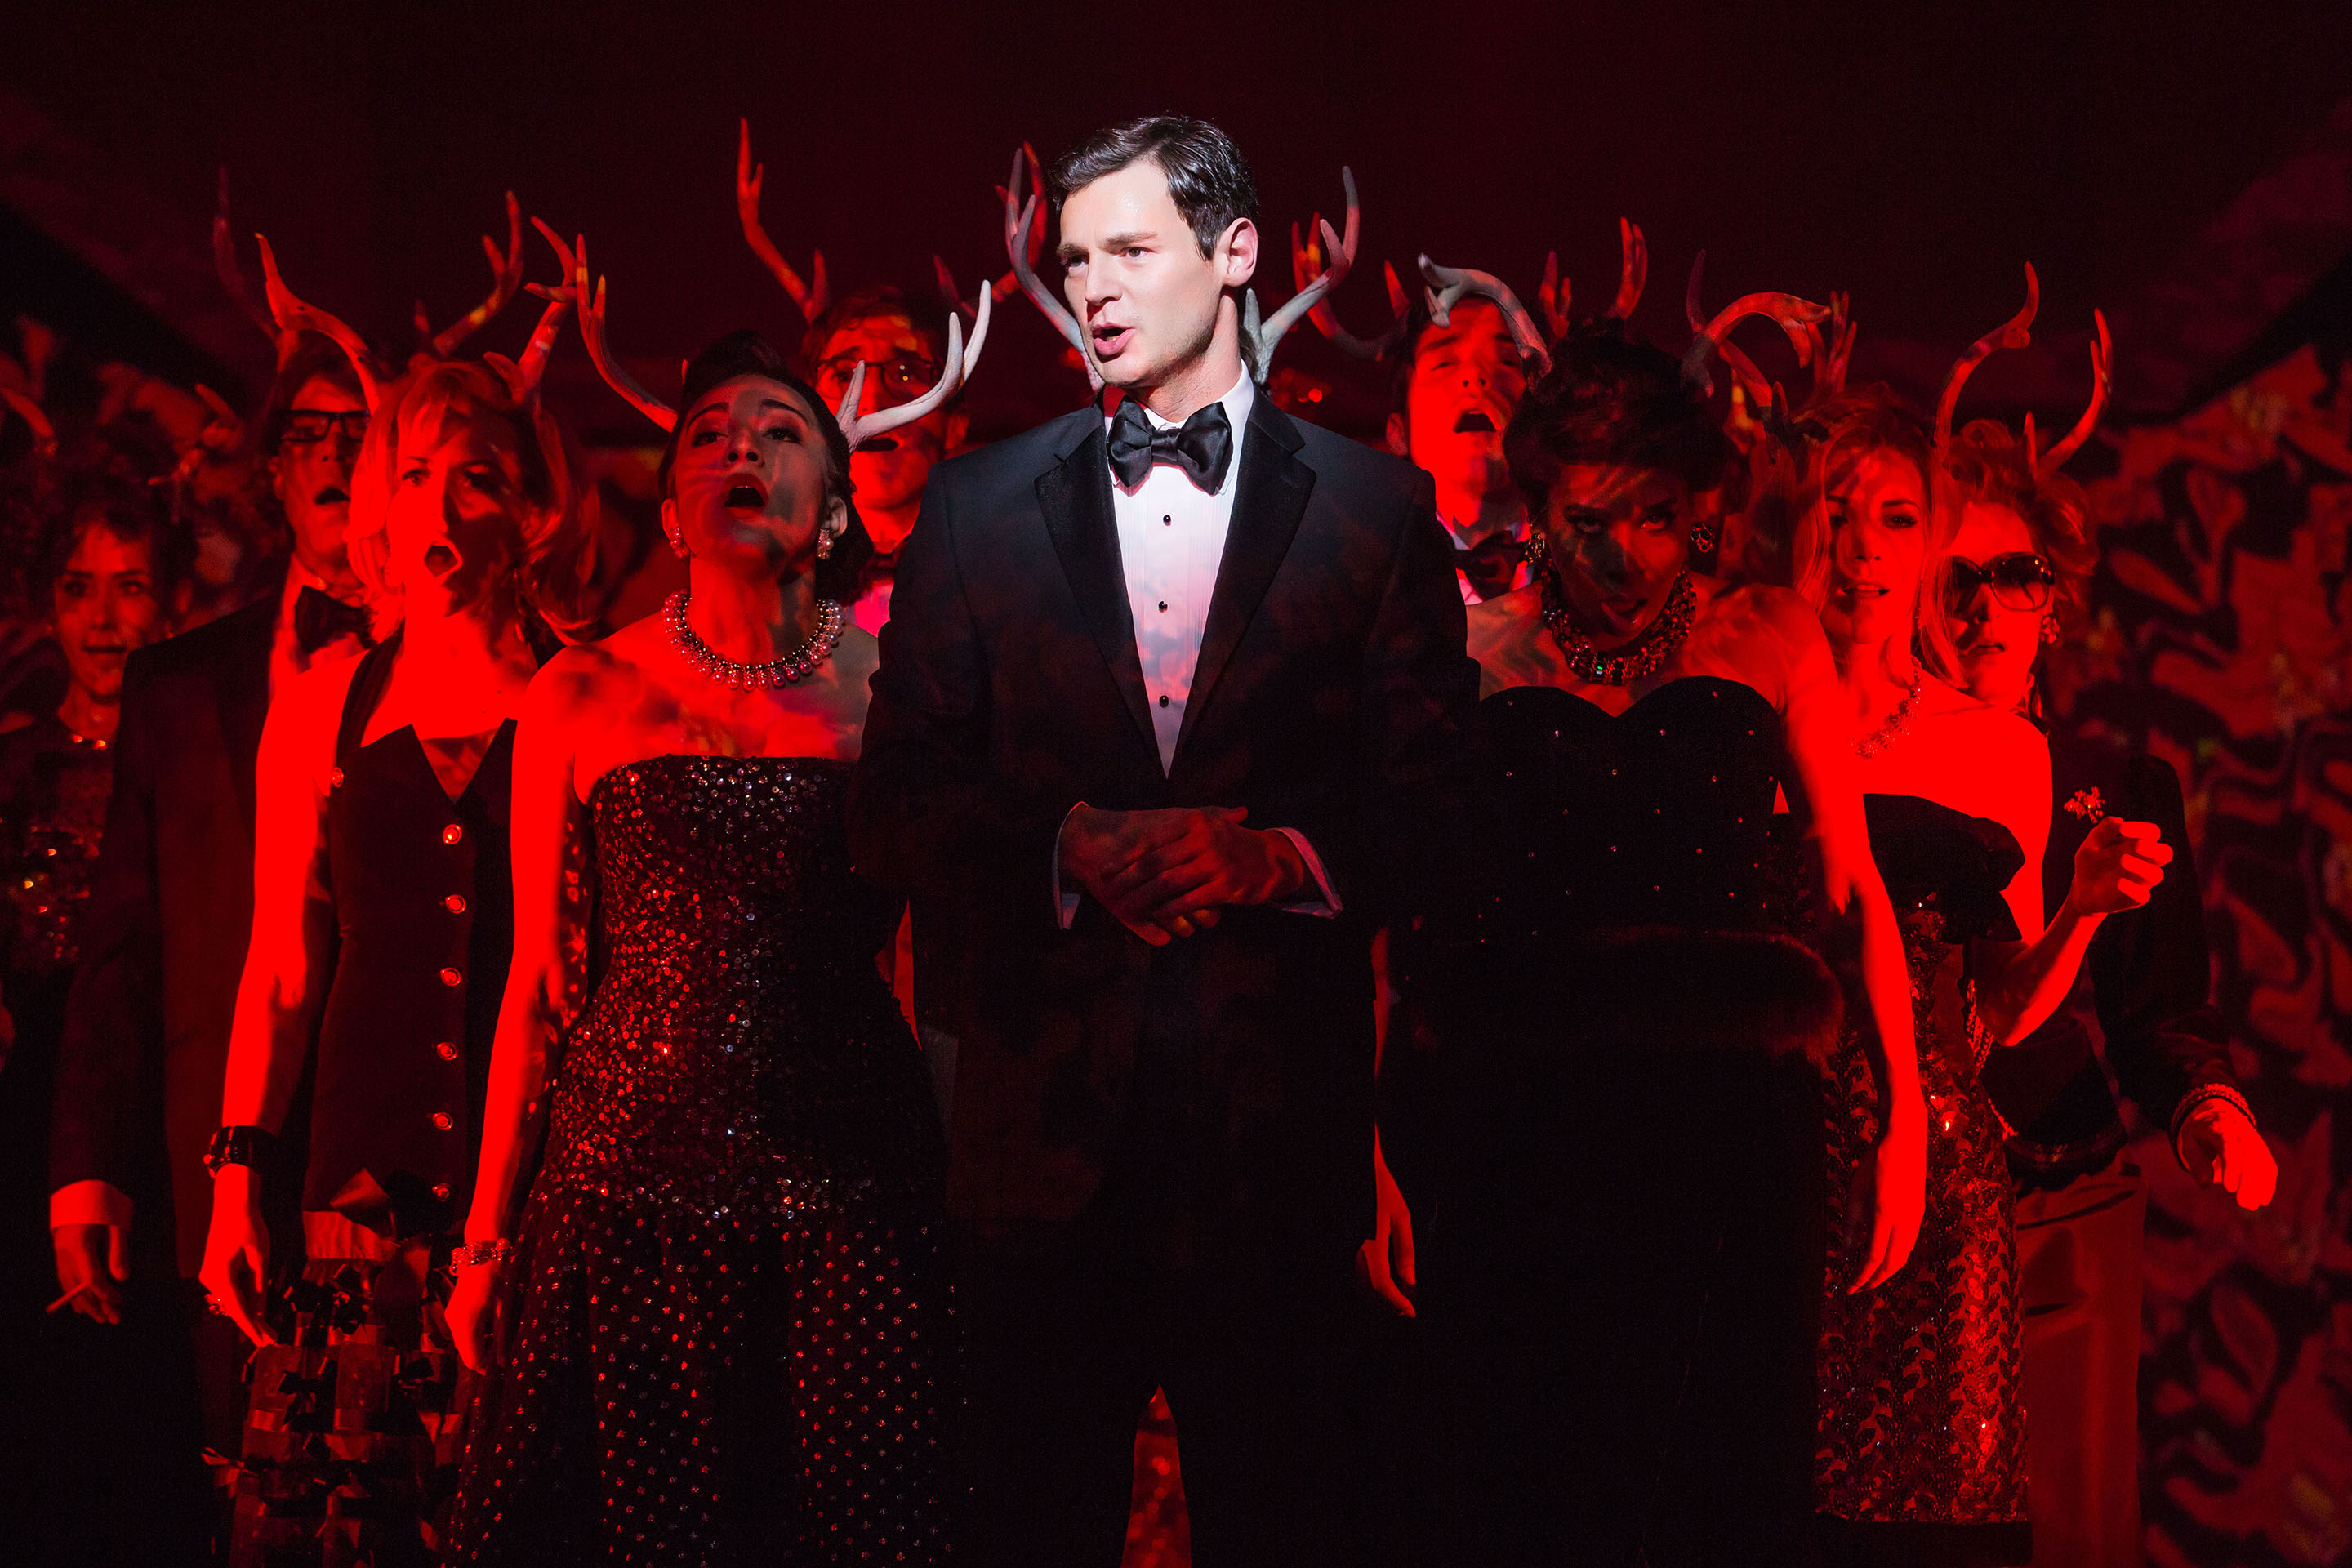 American Psycho The Musical on Broadway